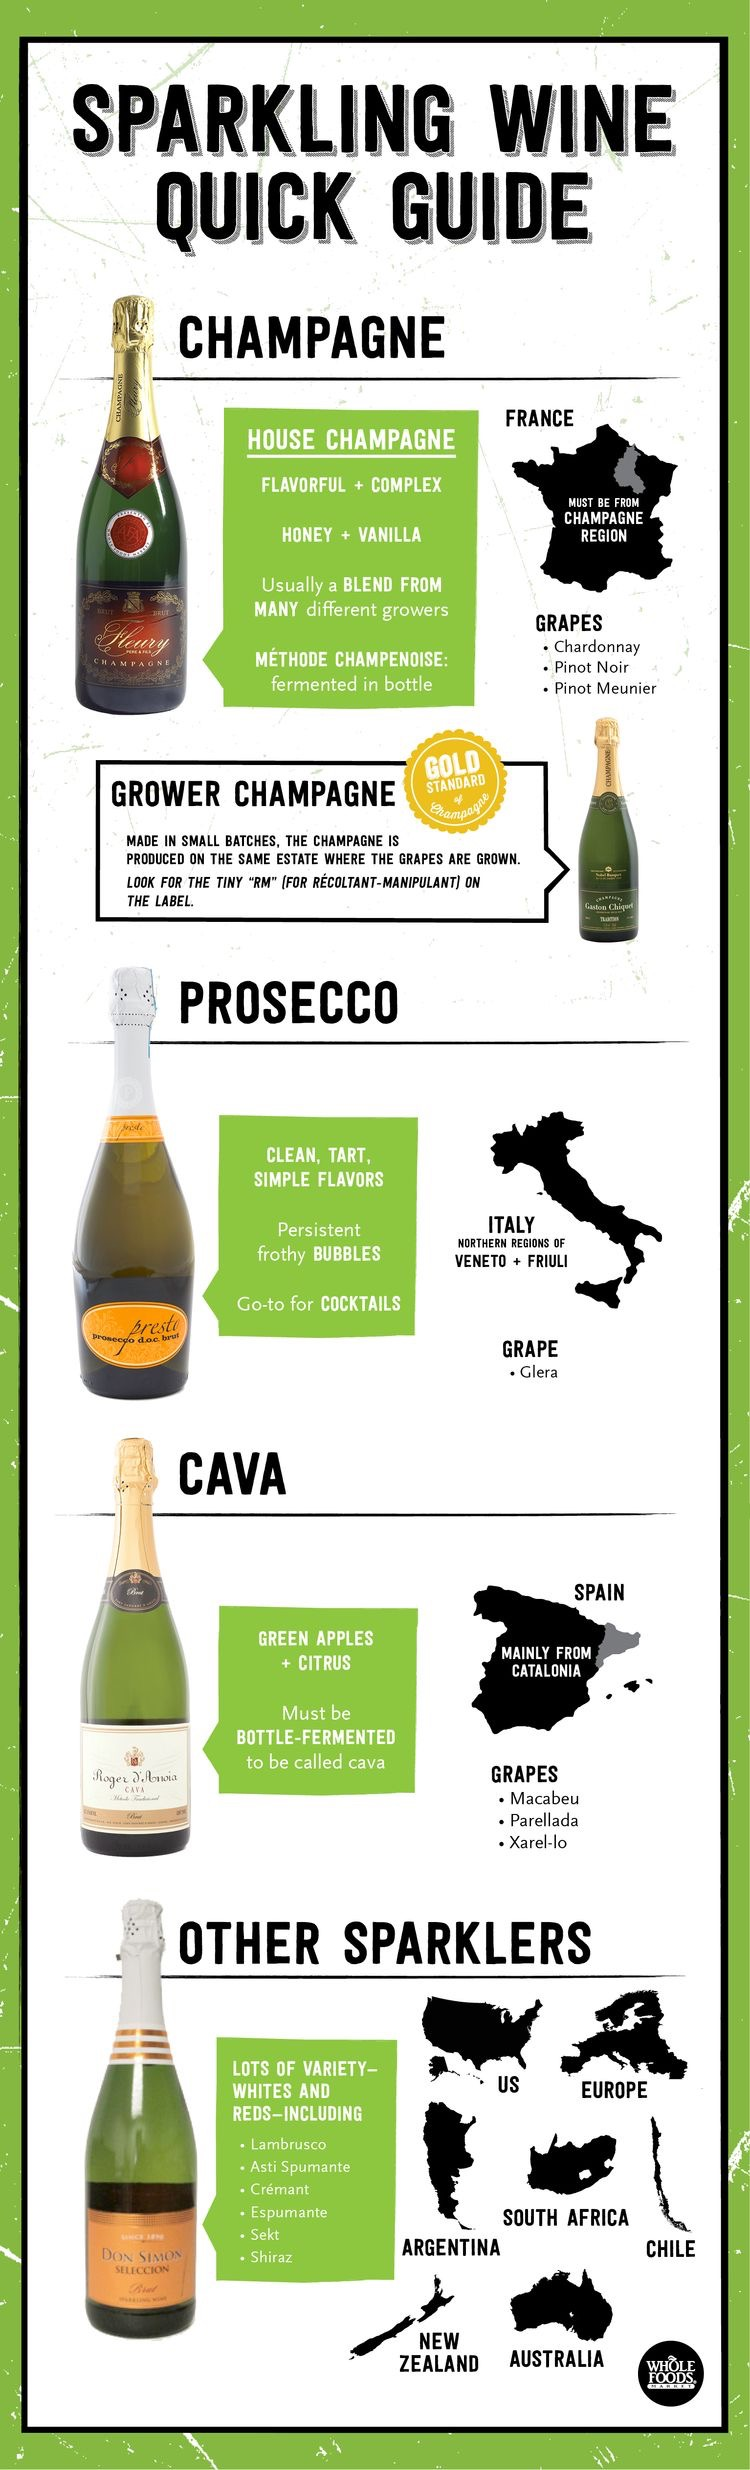 Whole Foods Sparkling Wines Quick Guide